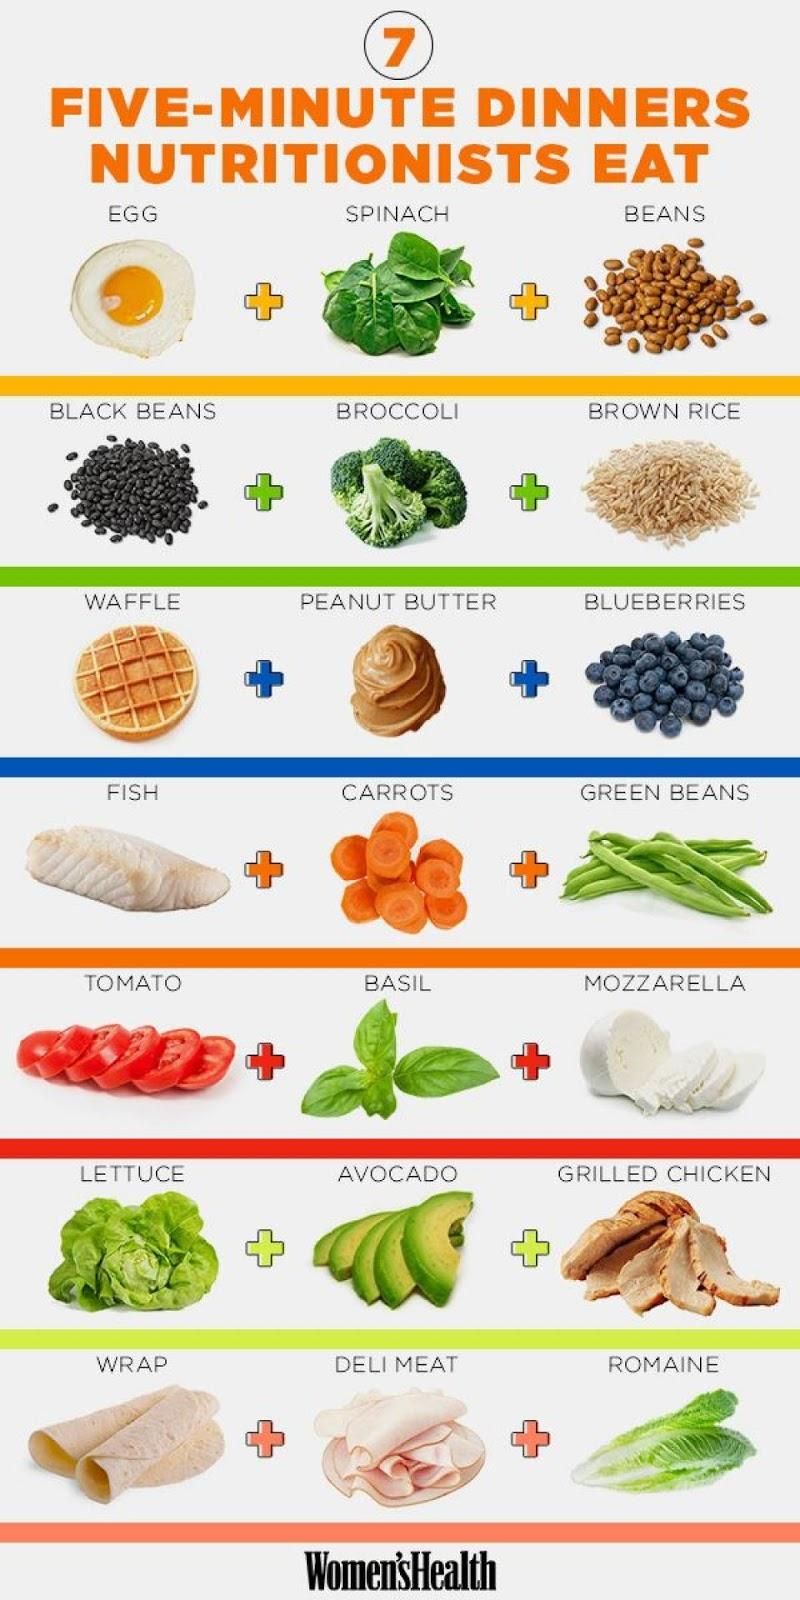 5-Minute Dinners